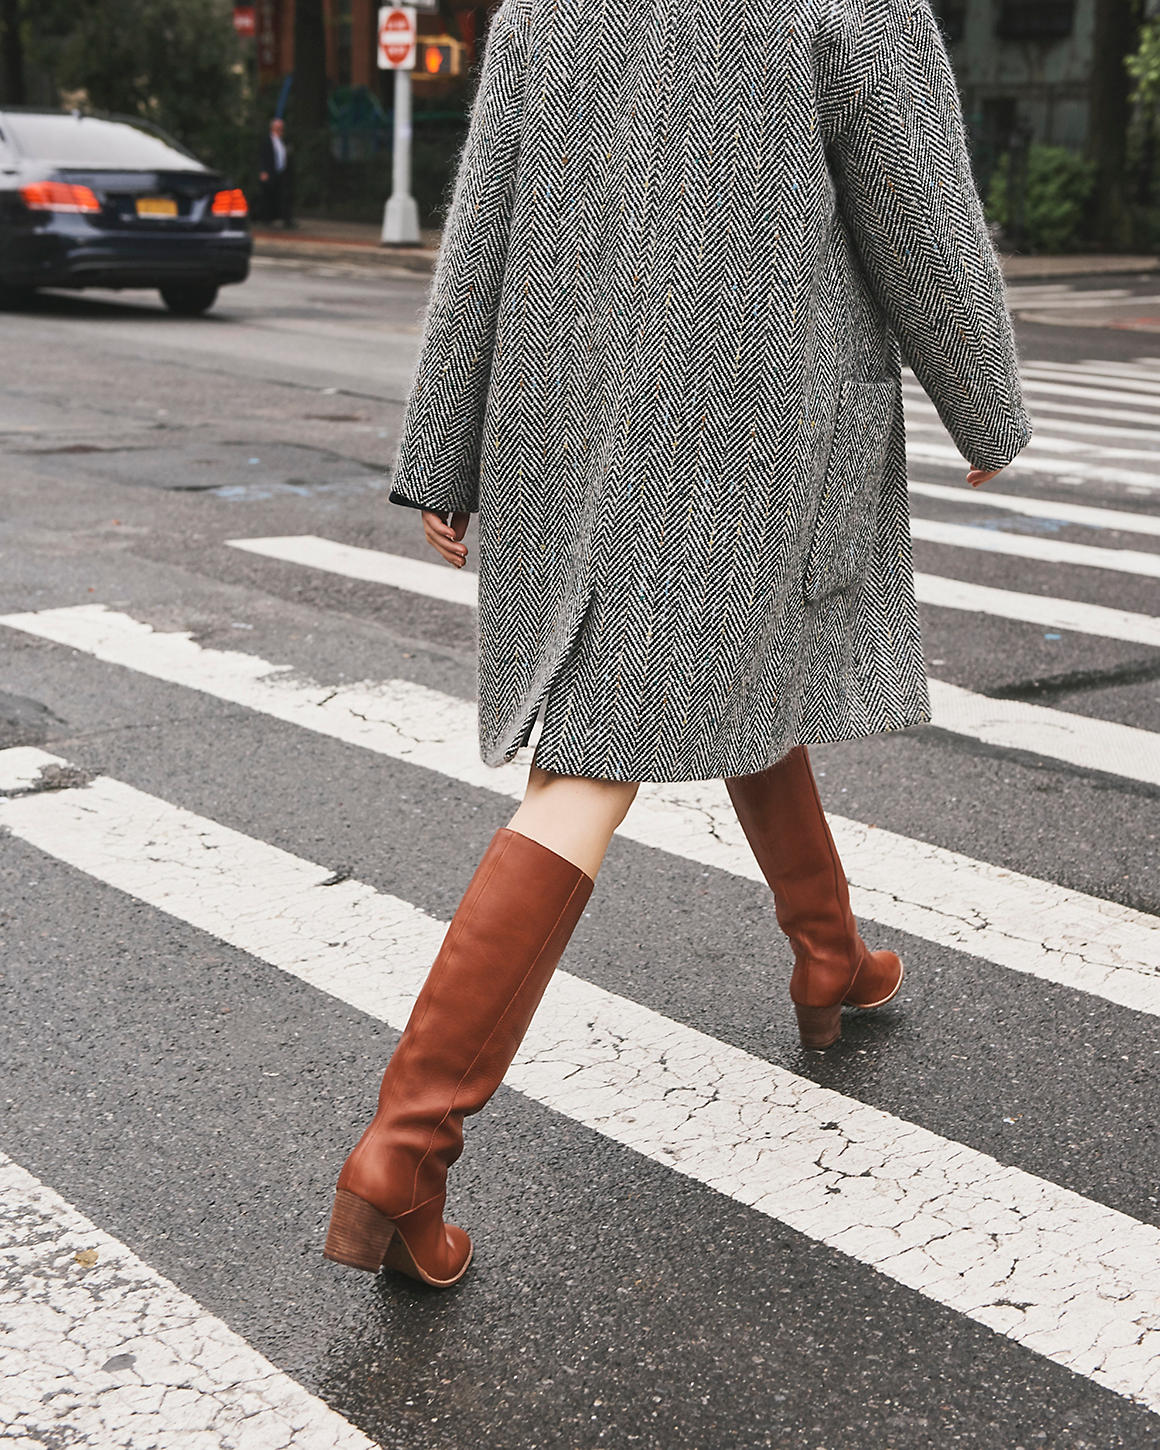 Whether it's a great pair of classic riding boots, an uber chic pair of over-the-knee boots, or perennial knee high boots, tall boots have staying power. Click through for 25 of my favorite Favorite fall/winter Tall Boots.